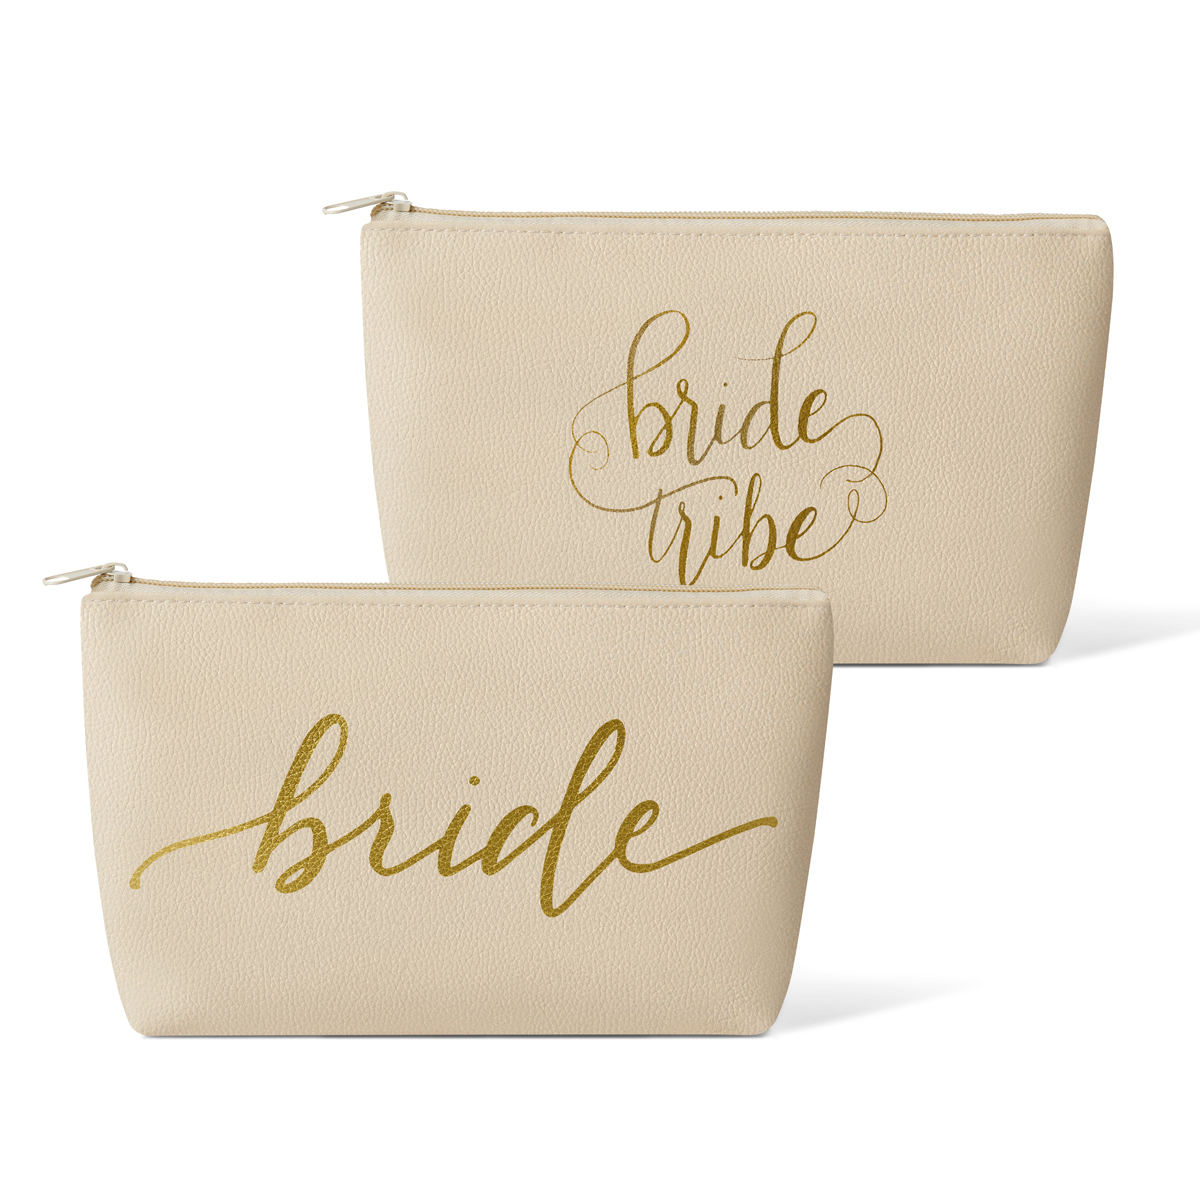 Bride Tribe Faux Leather Makeup Bag